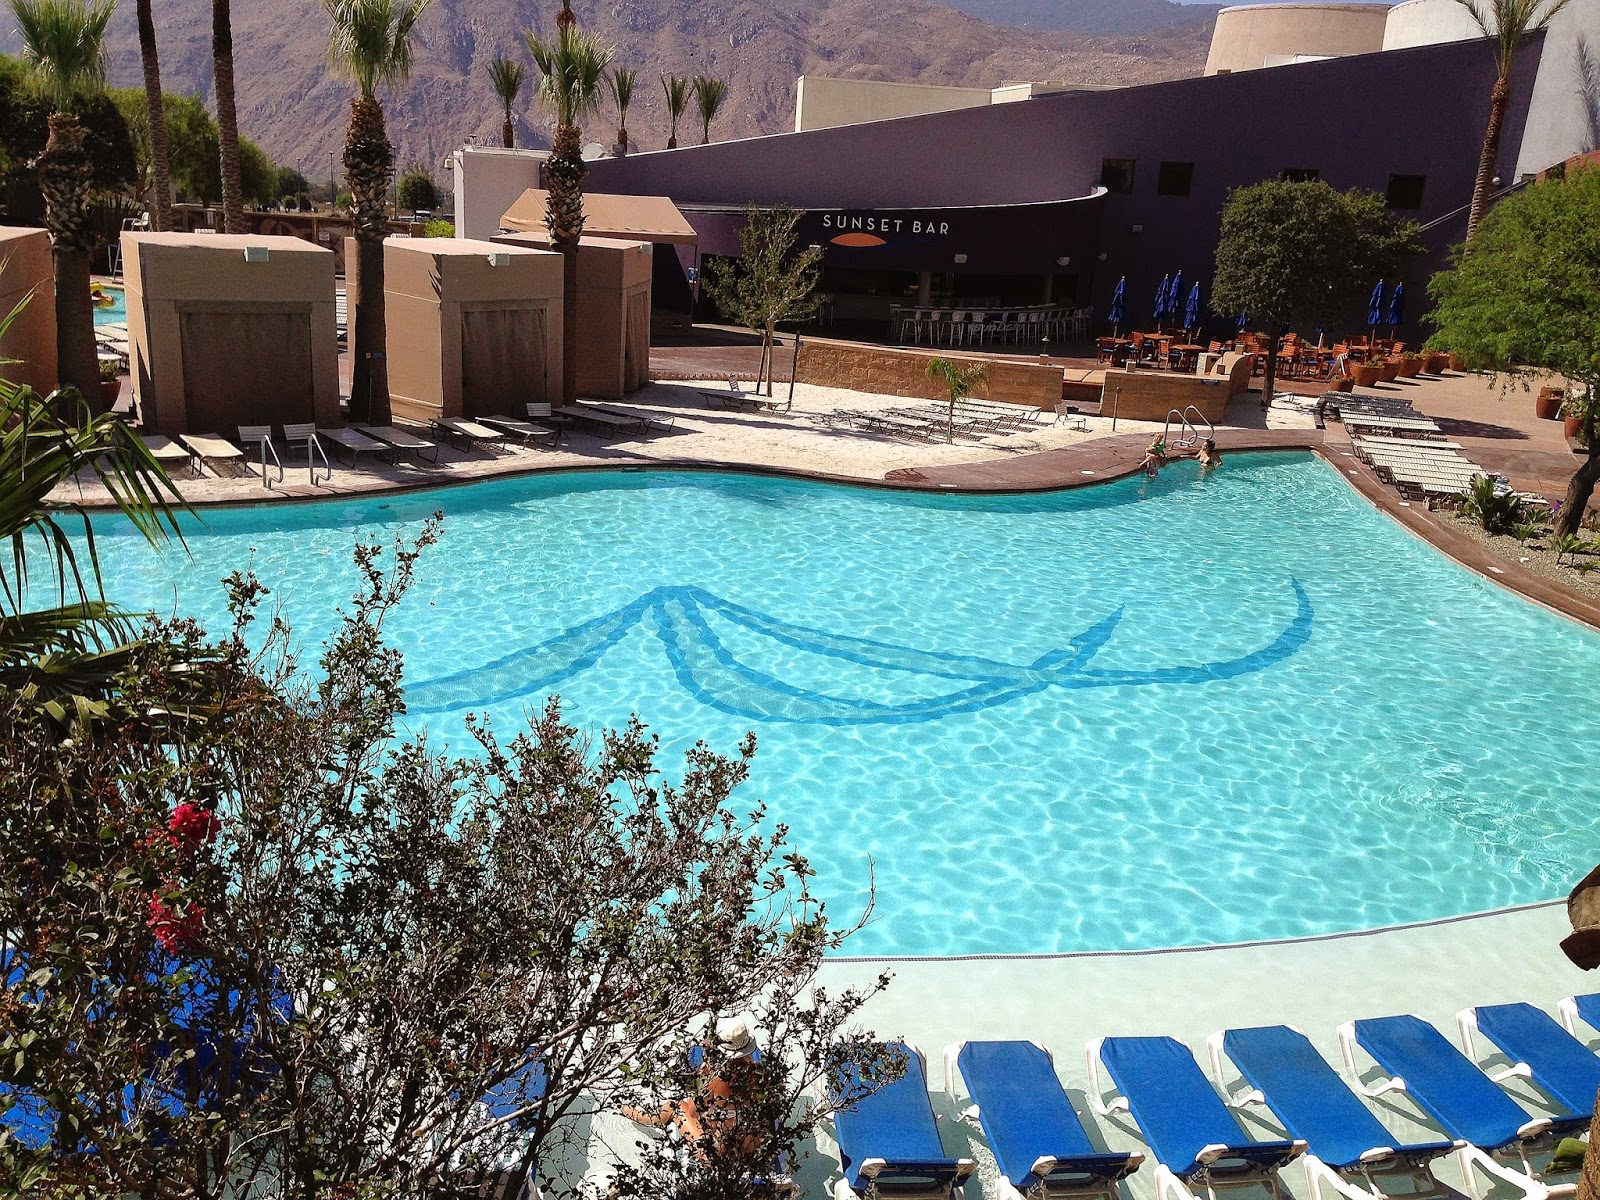 Morongo Casino Resort Pool, Morongo Review, Fashion Blogger, Morongo Pool